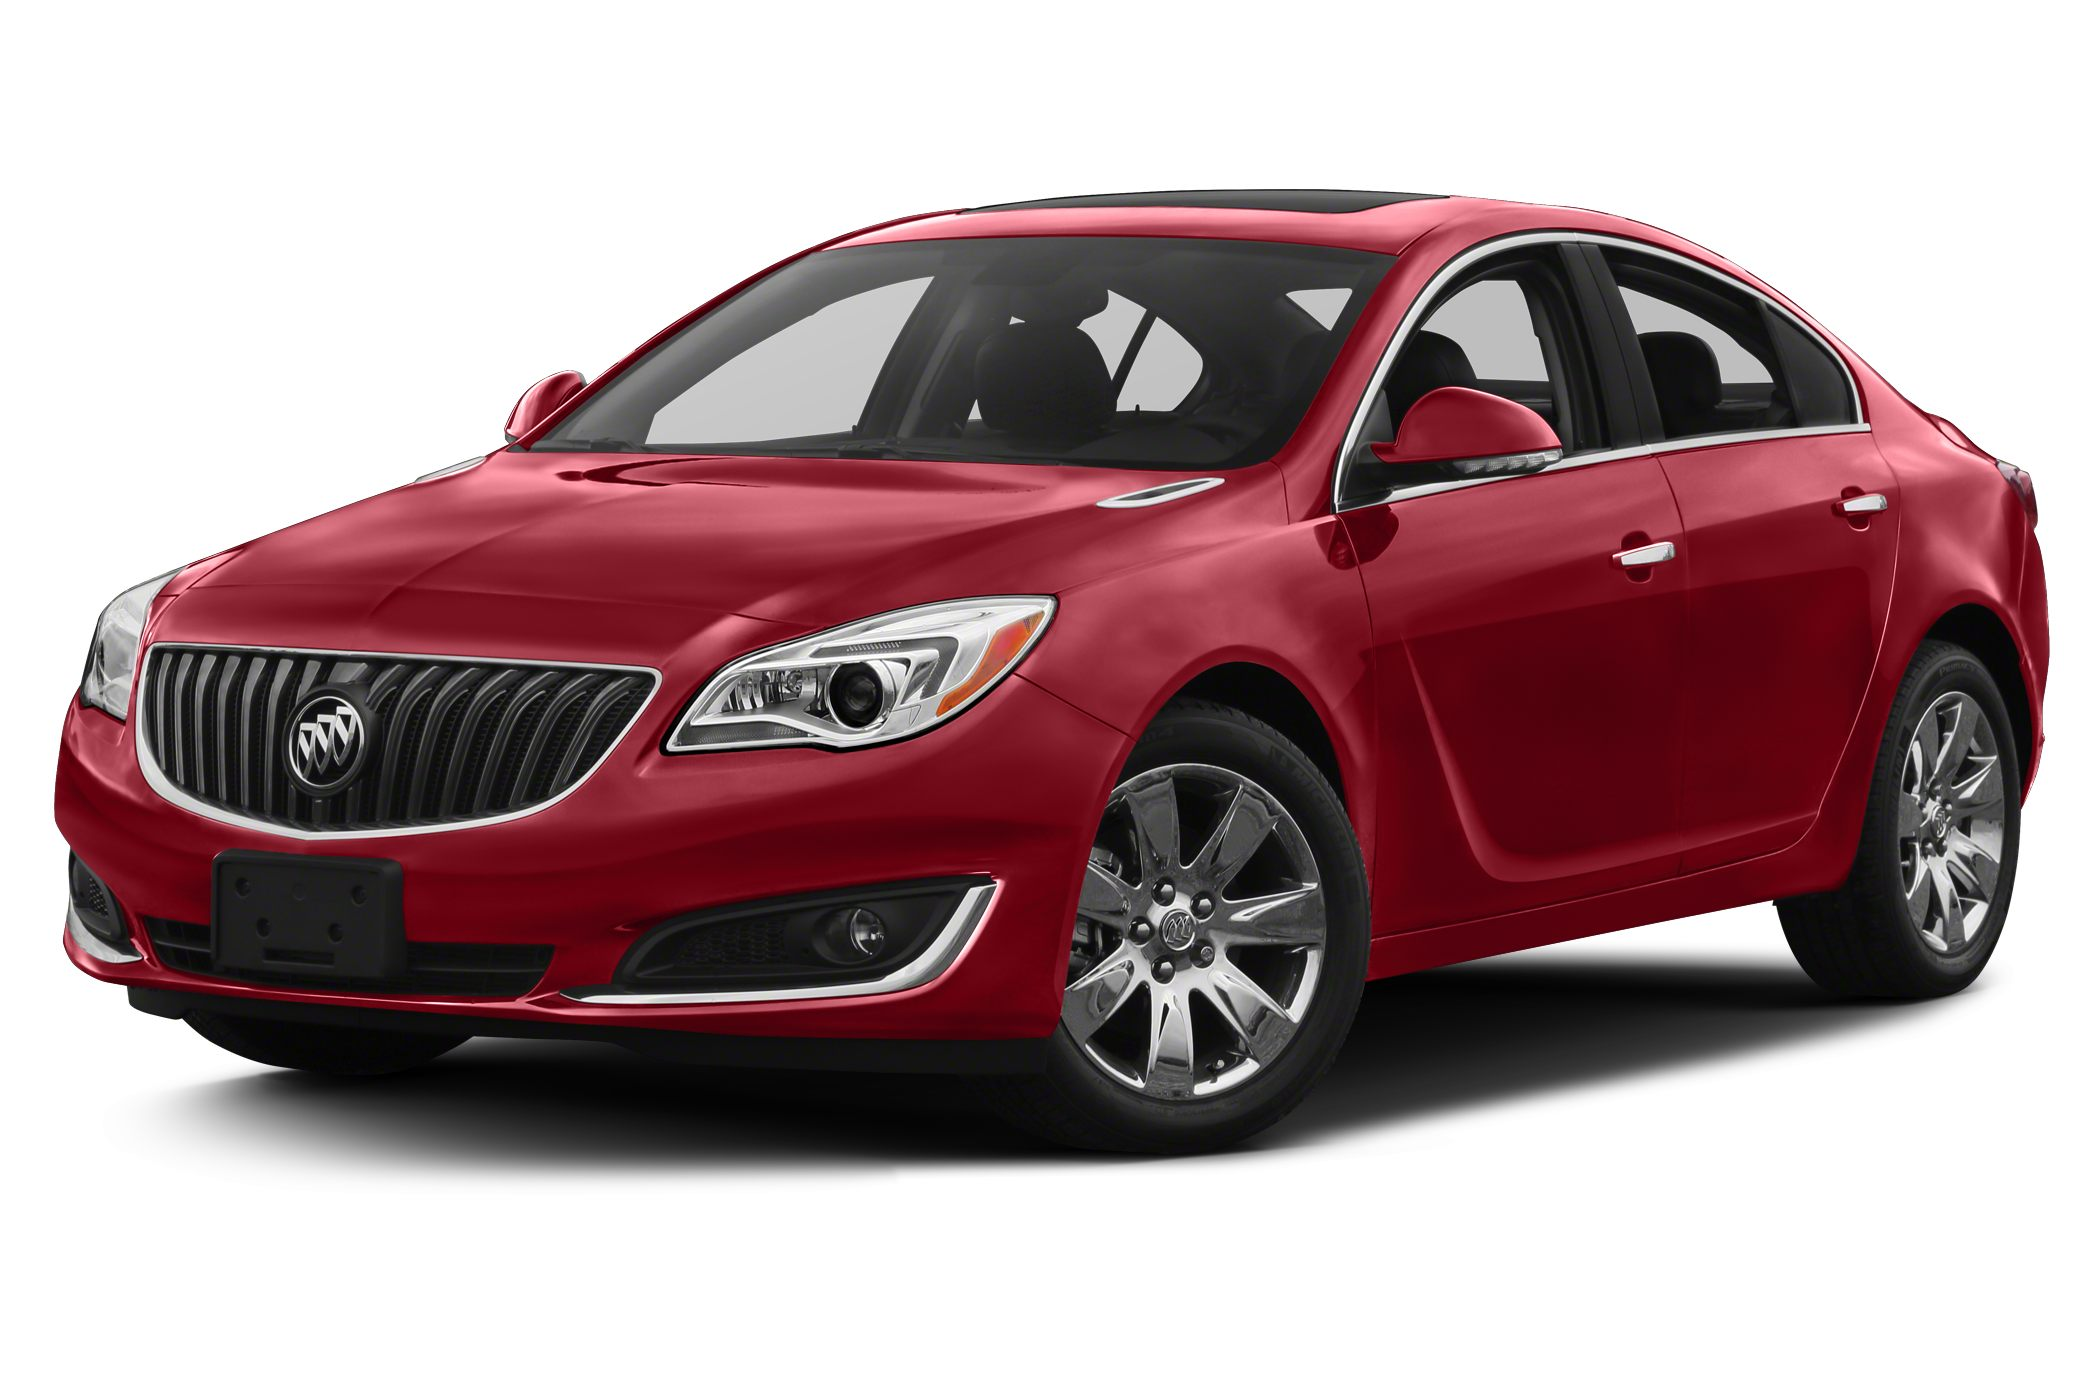 2015 Buick Regal Turbo Featuring a braking assist dual climate control stability control tracti